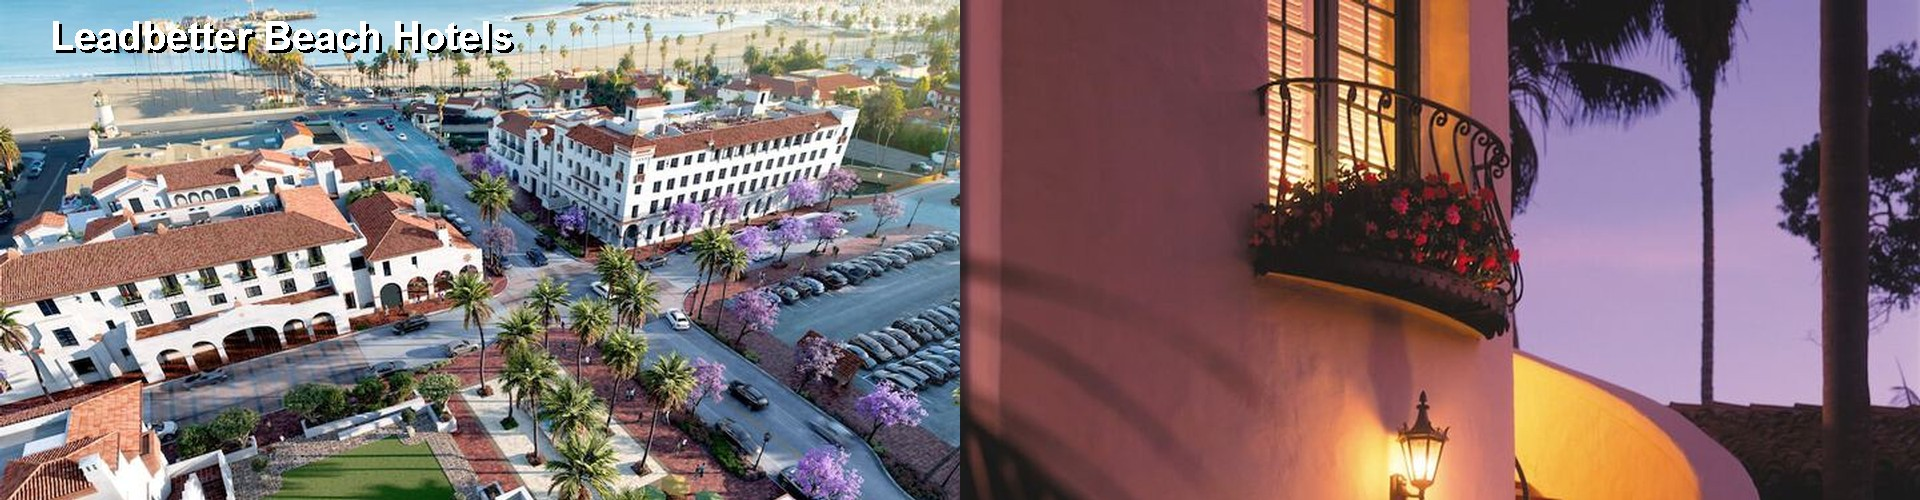 5 Best Hotels near Leadbetter Beach